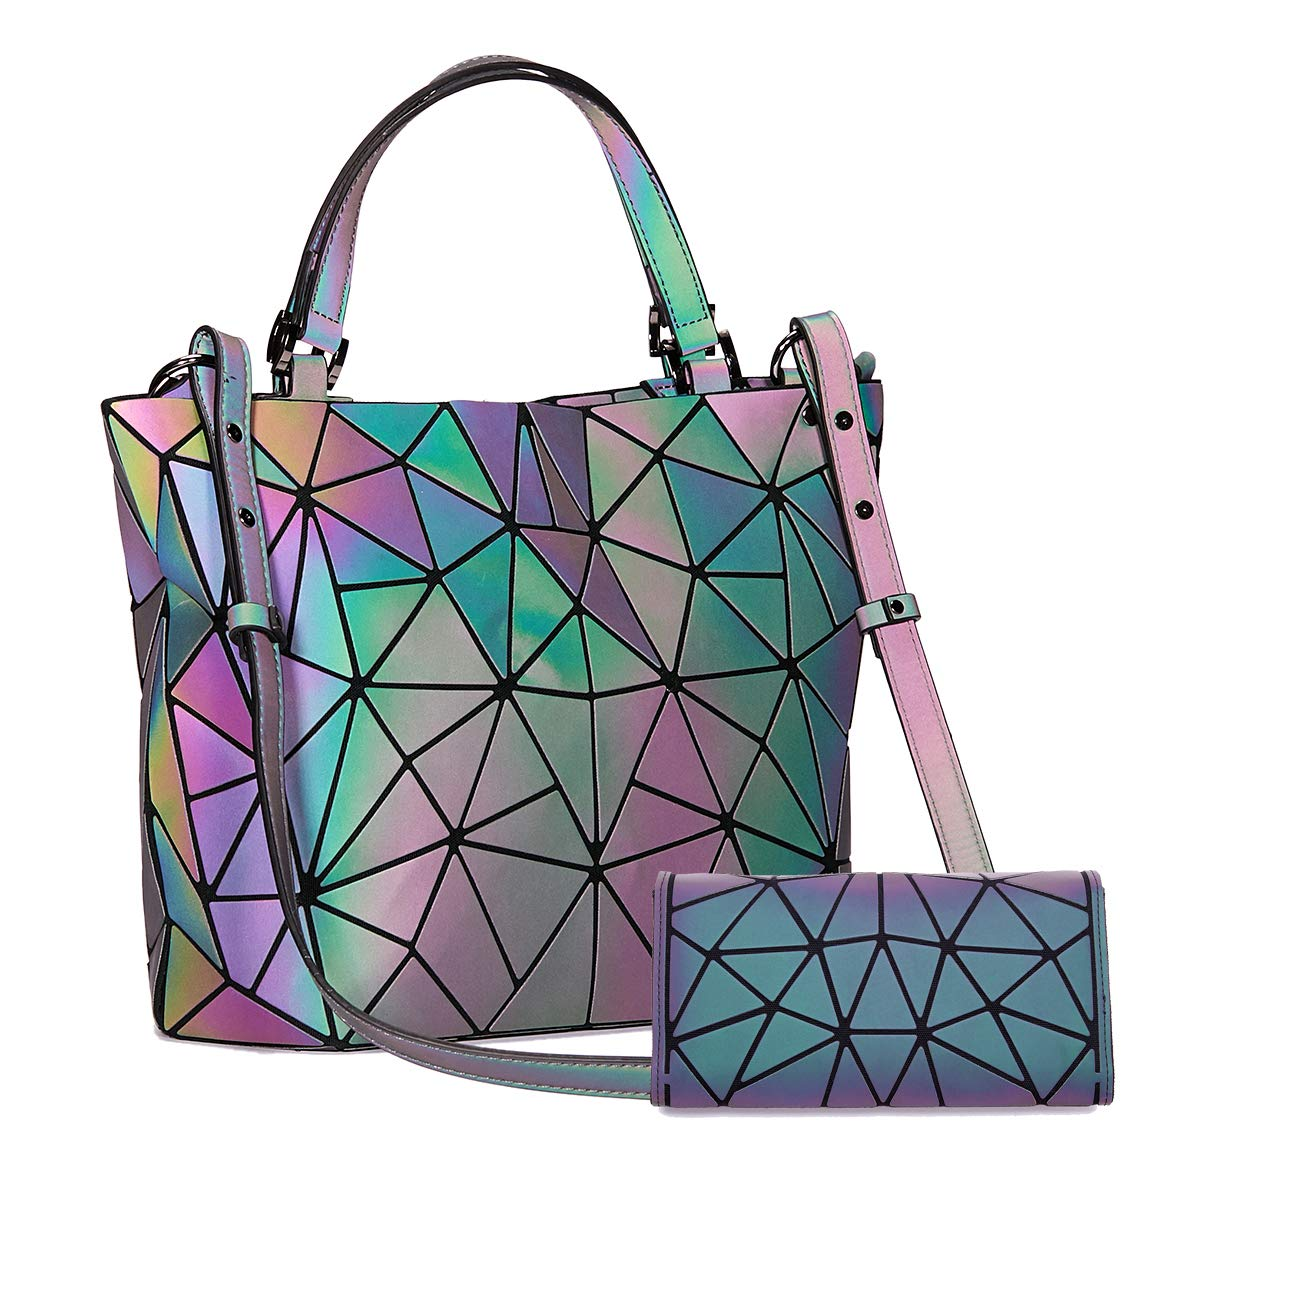 Harlermoon Geometric Luminous Holographic Purses and Handbags Flash  Reflactive Tote for Women … product image c26317476c8dc